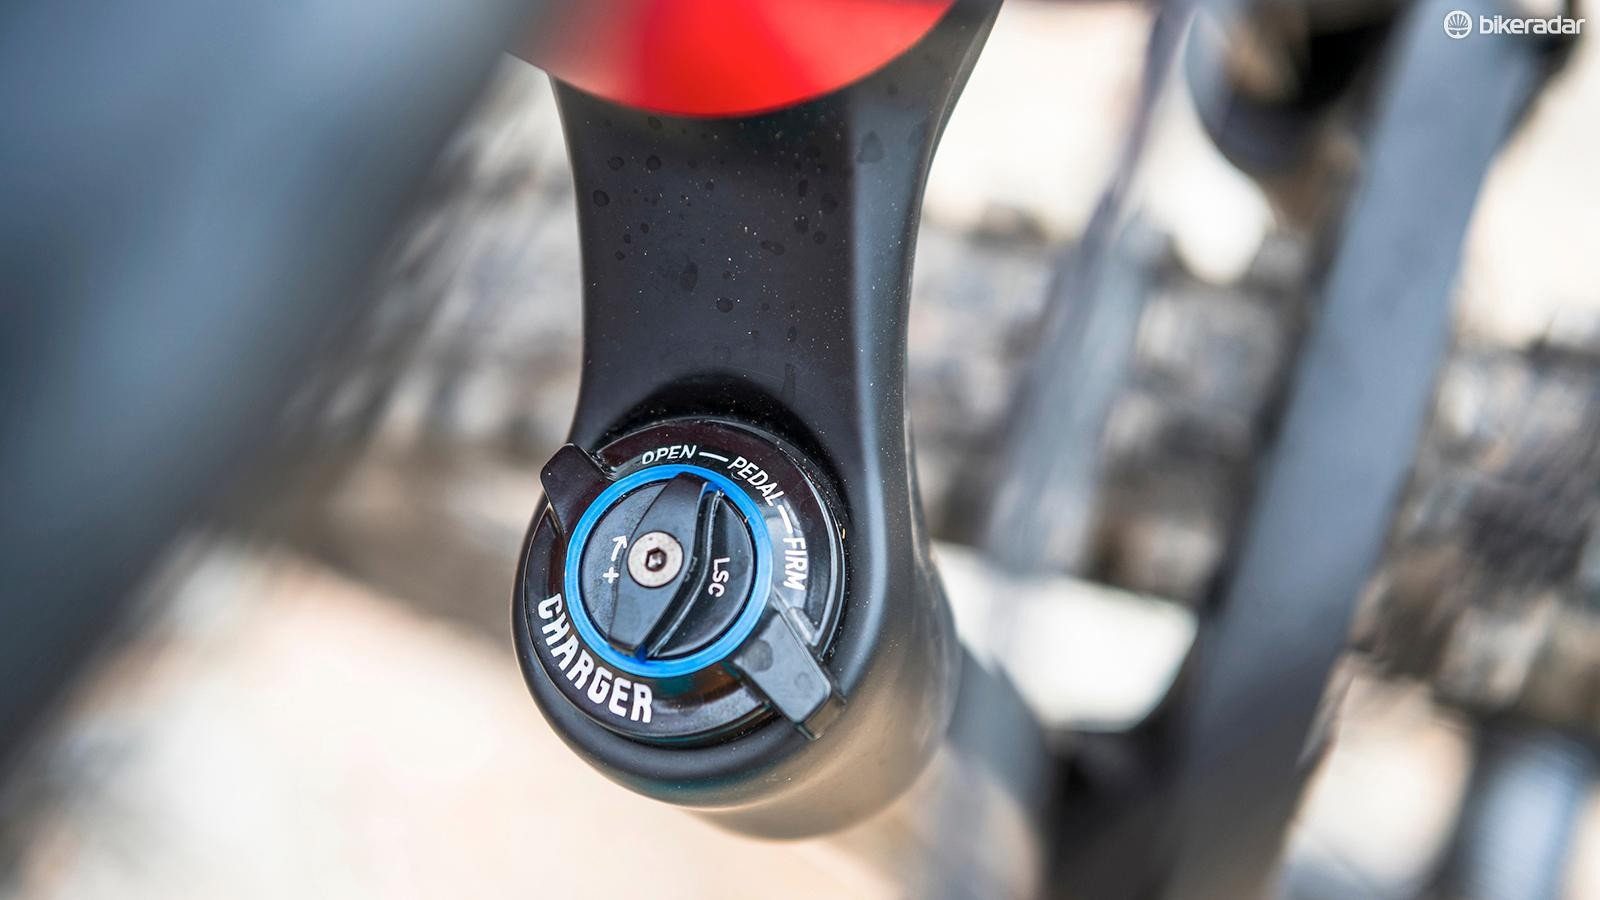 RockShox' Charger damper is one of the best out there